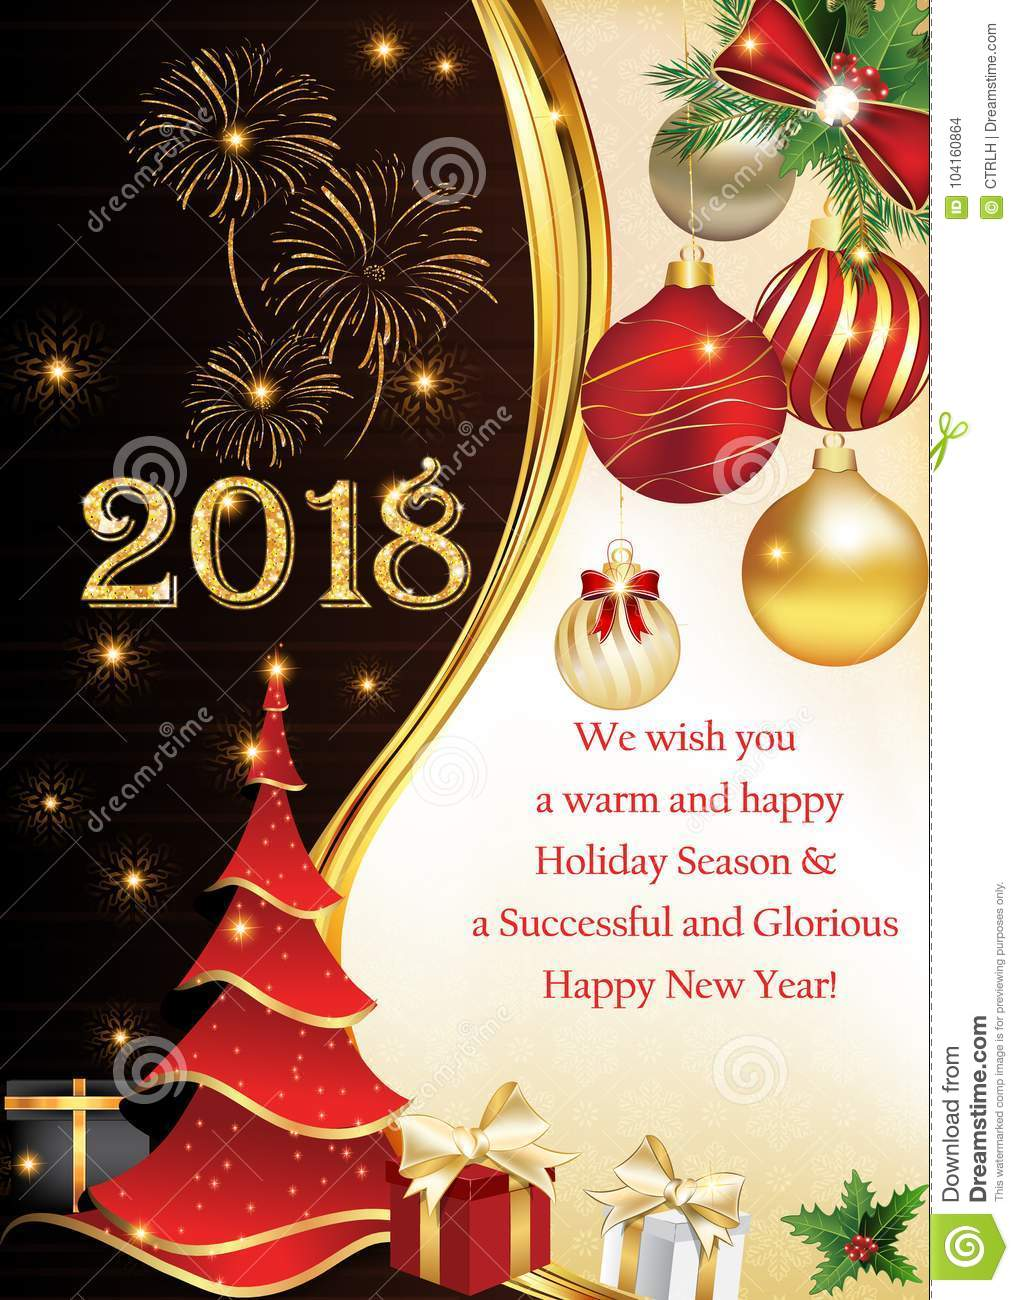 we wish you a warm and happy holiday season greeting card